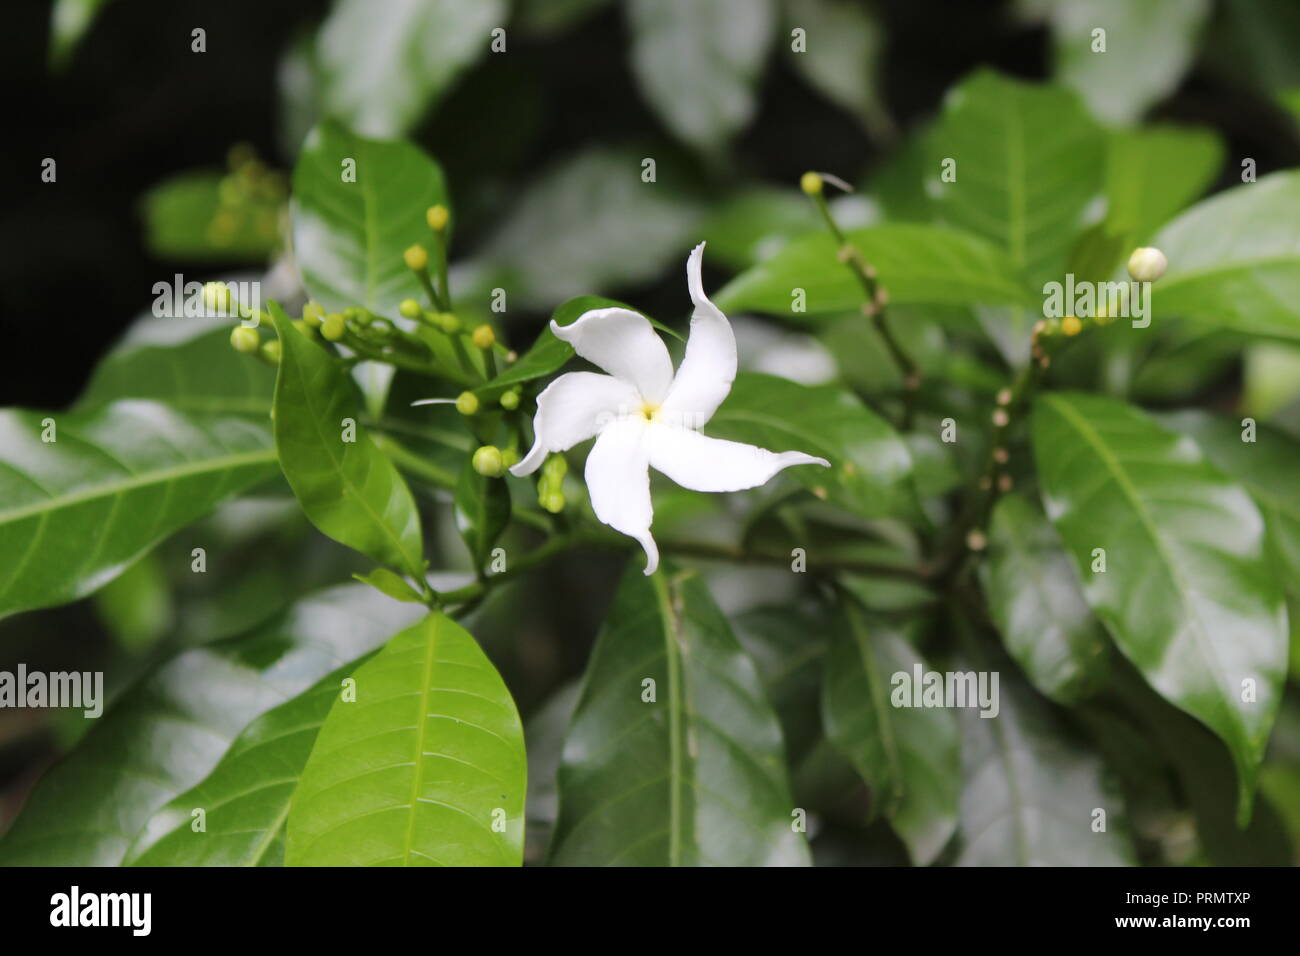 A beautiful White Flower. a beauty to watch close up of this flower it its real form.dedicated to those who love white as their sign of positiveness. - Stock Image